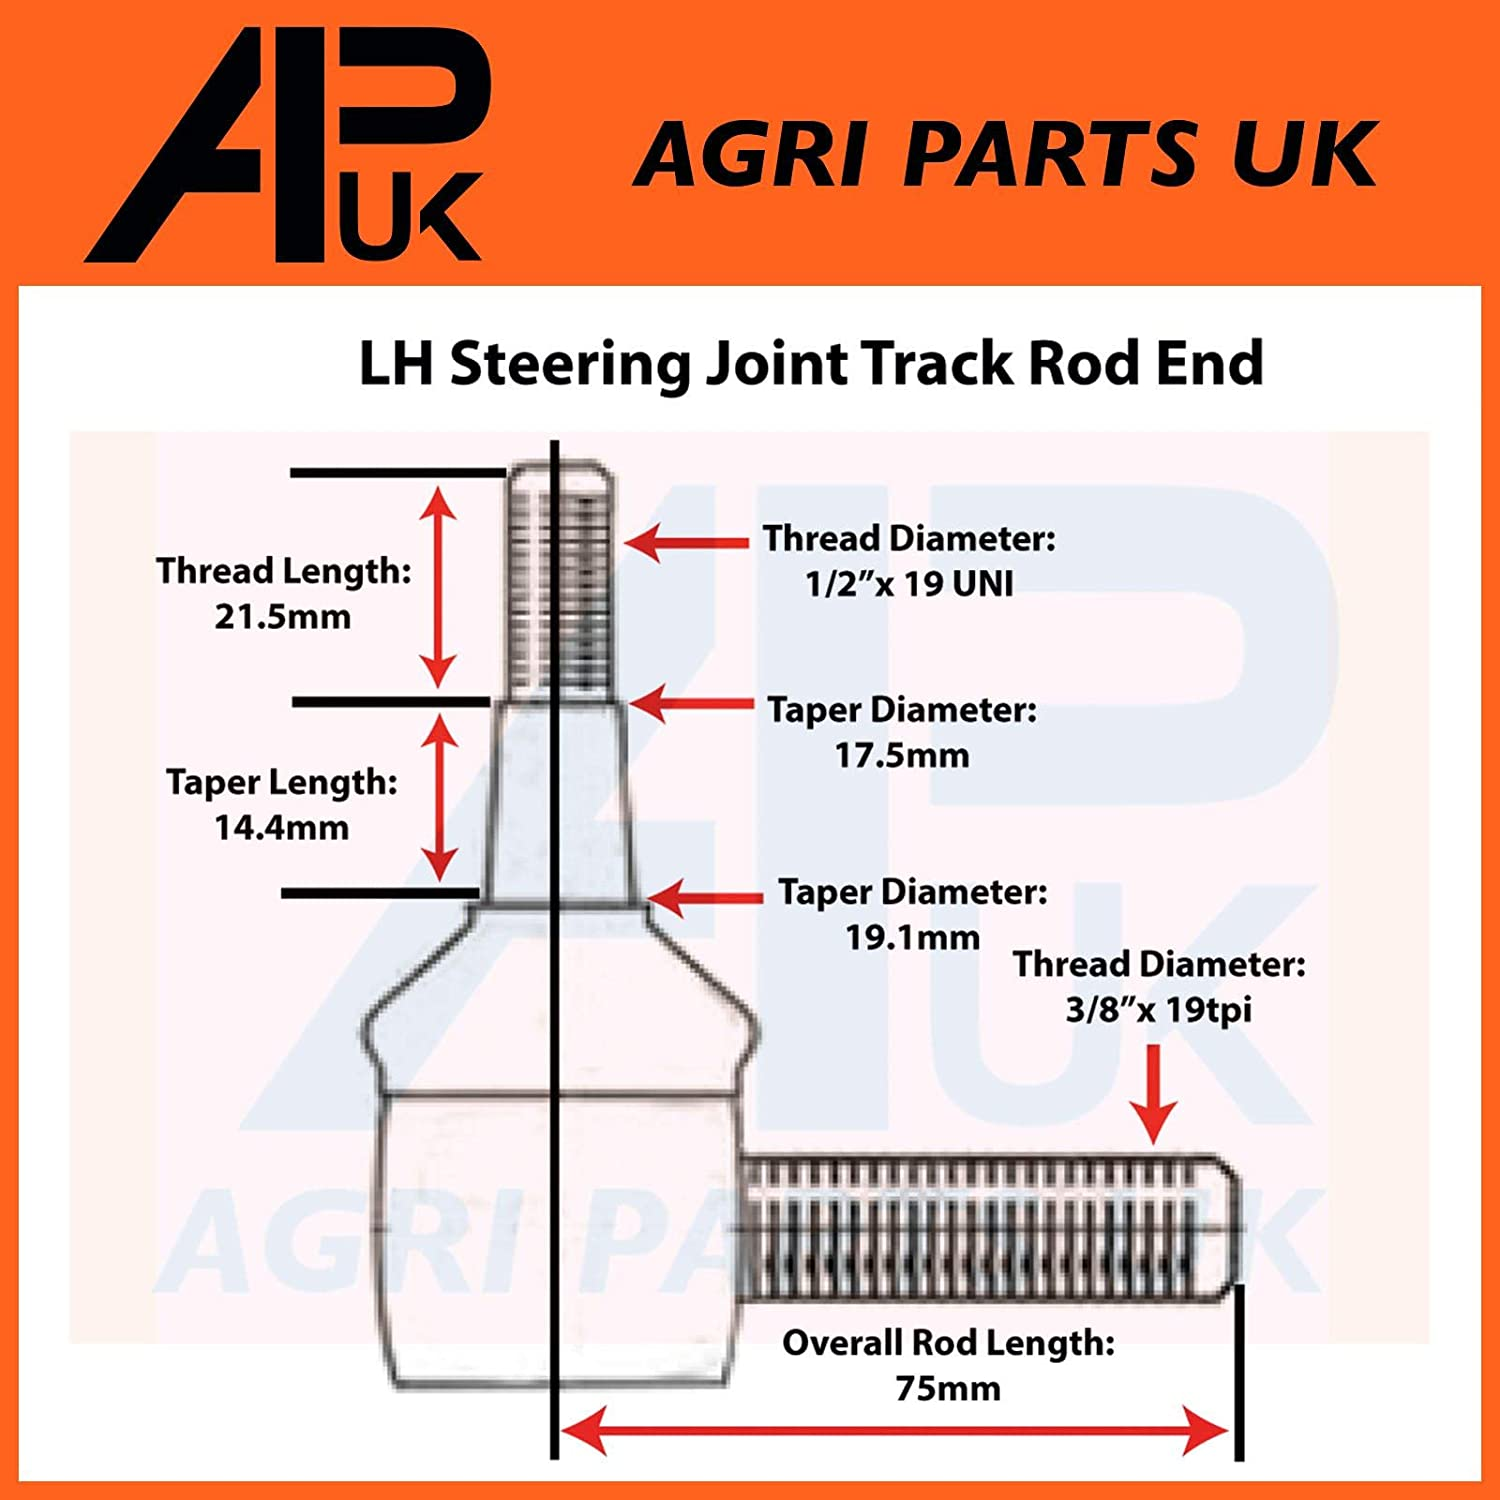 APUK Front Steering Drag Link Joint Track Rod End to fit International B250 B275 B276 Tractor